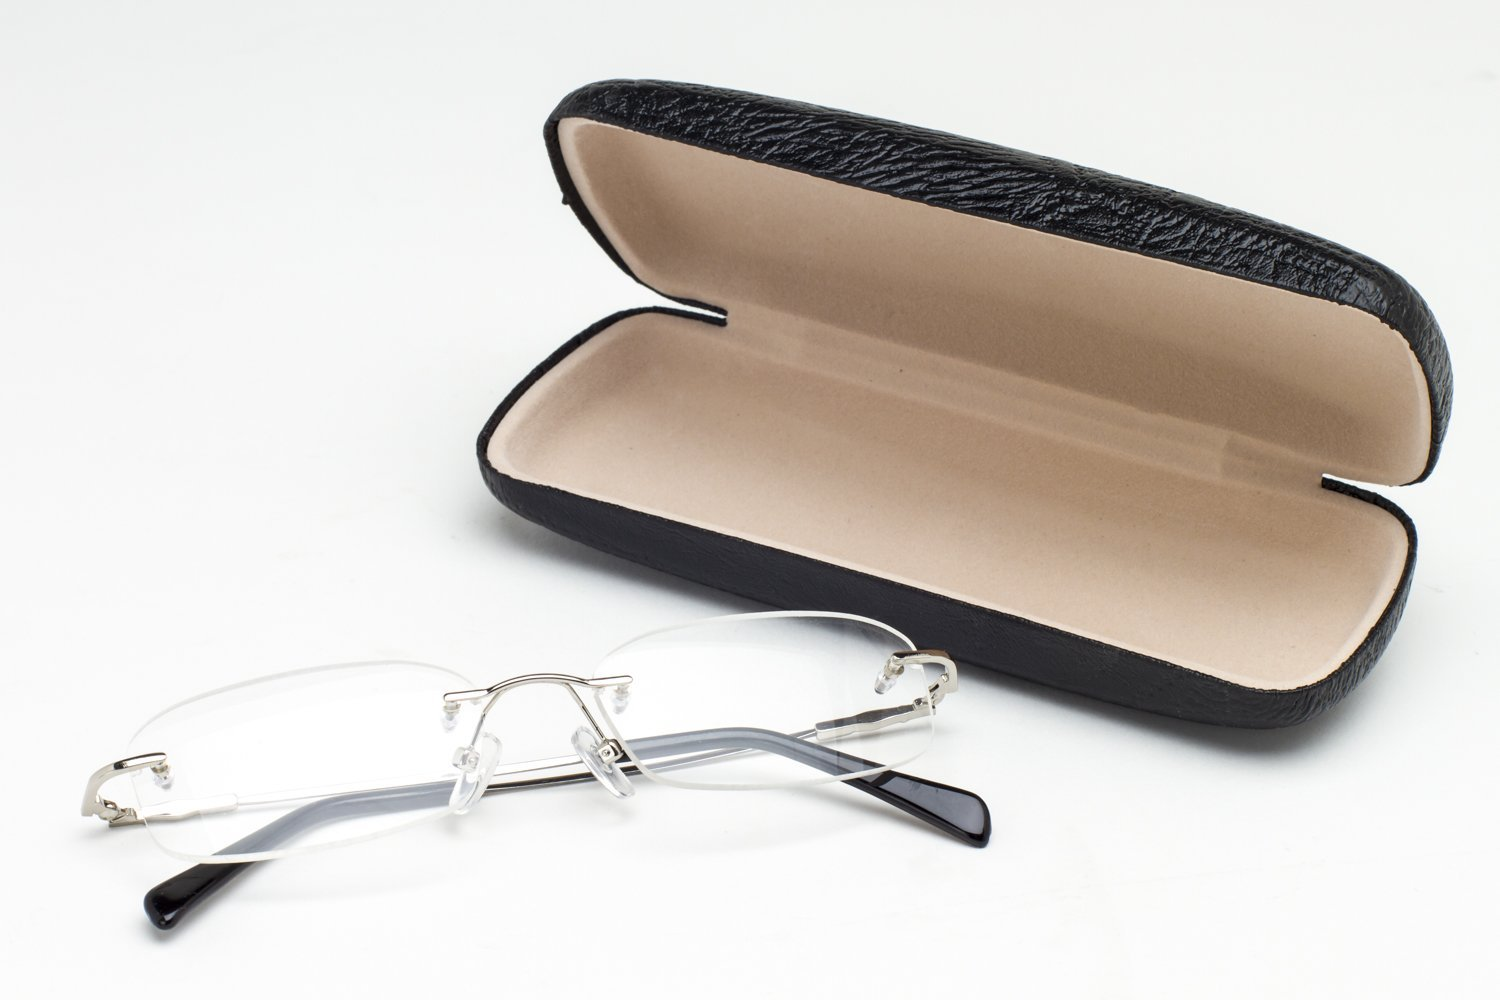 Polycarbonate lenses with Scratch Coating and a hard Black Leather Protective Case